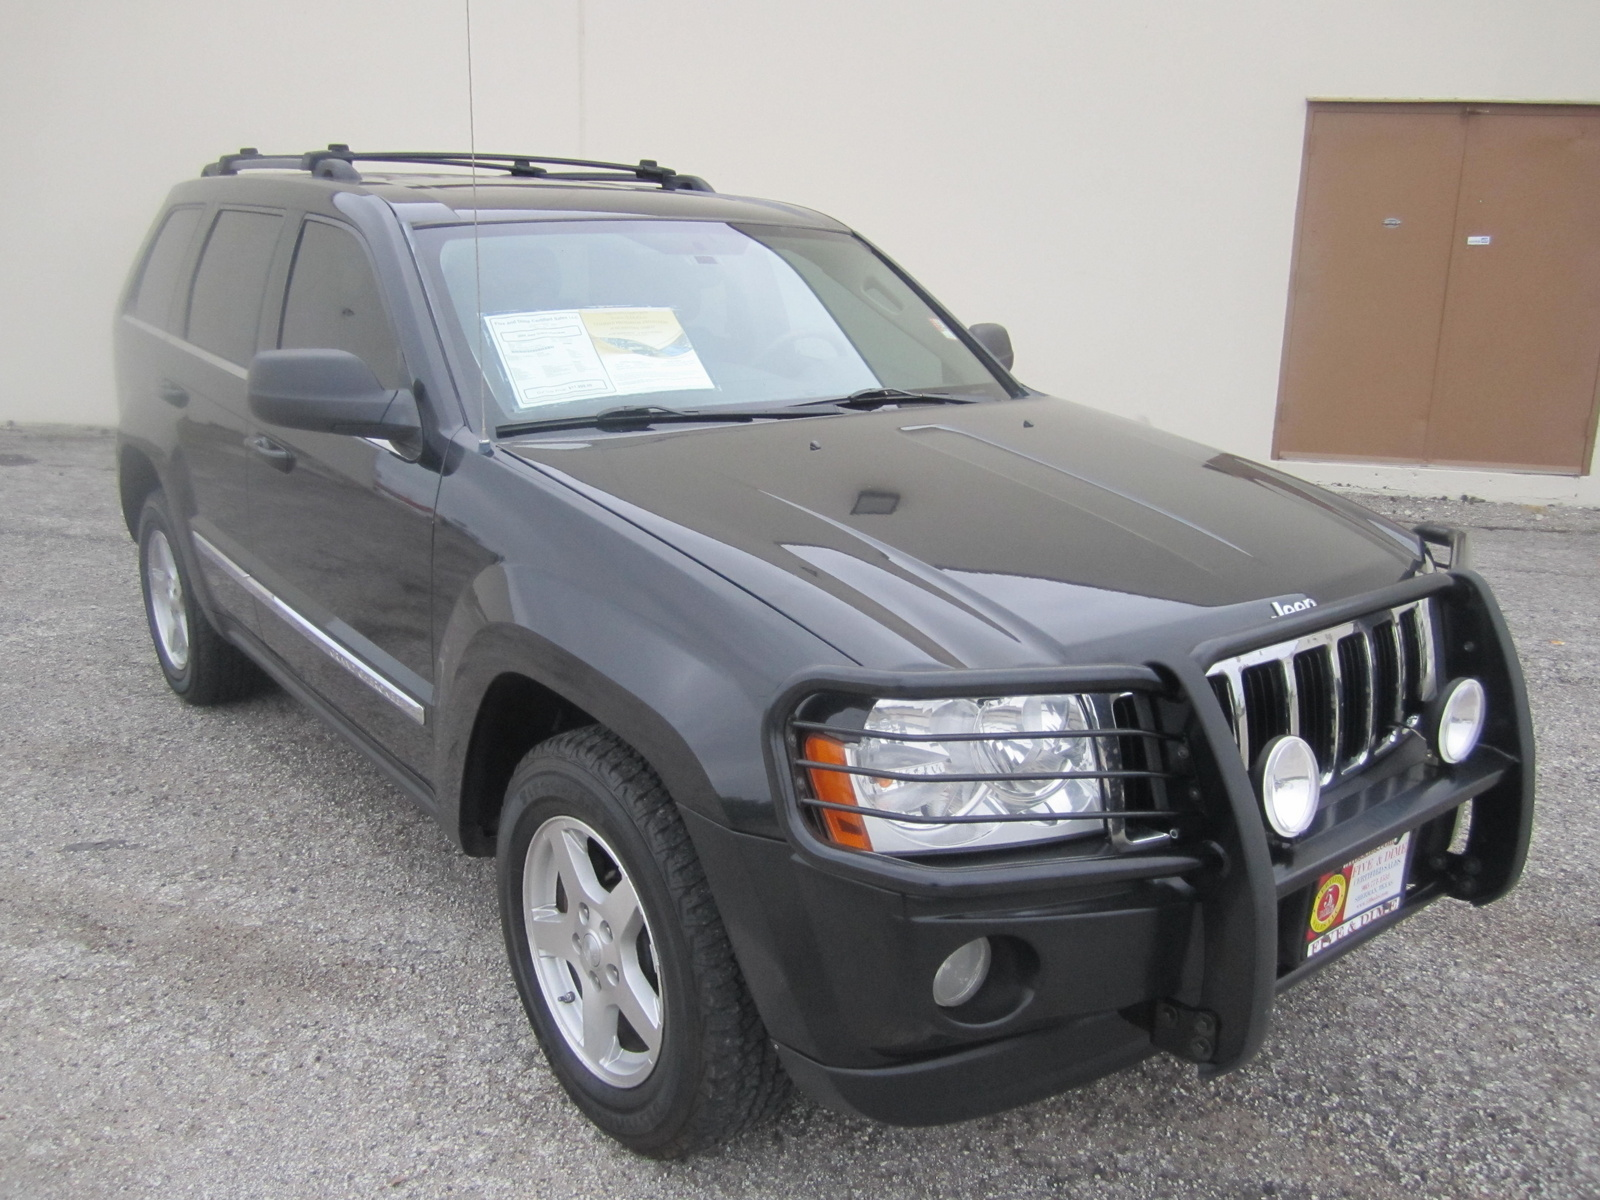 2005 jeep grand cherokee limited 4wd picture exterior. Cars Review. Best American Auto & Cars Review